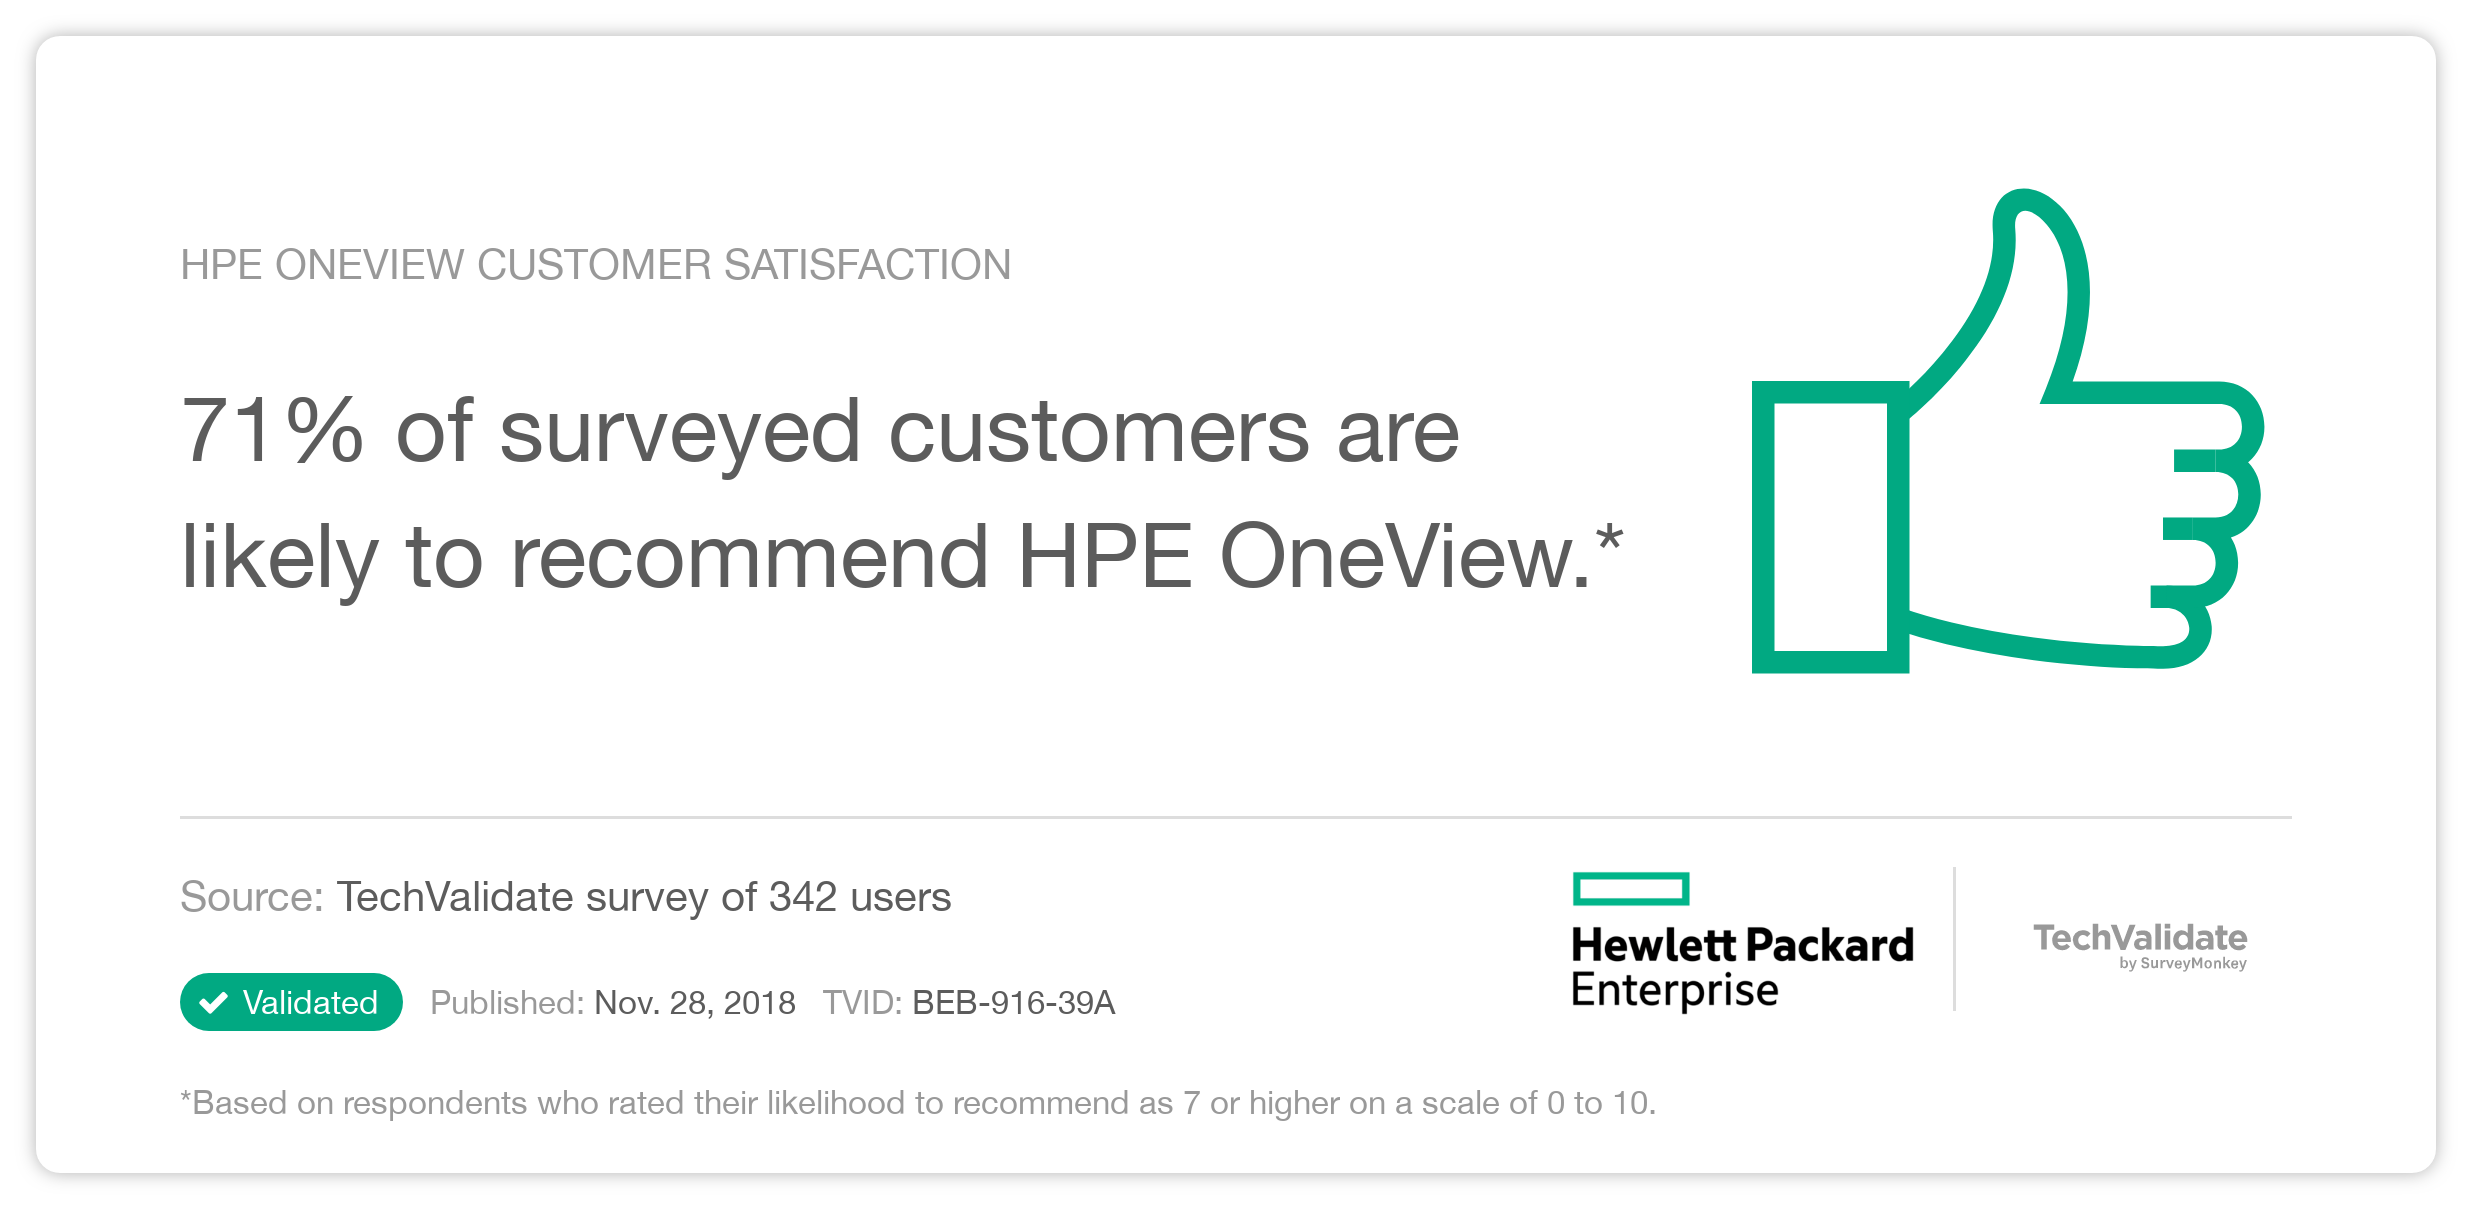 HPE OneView Customer Satisfaction